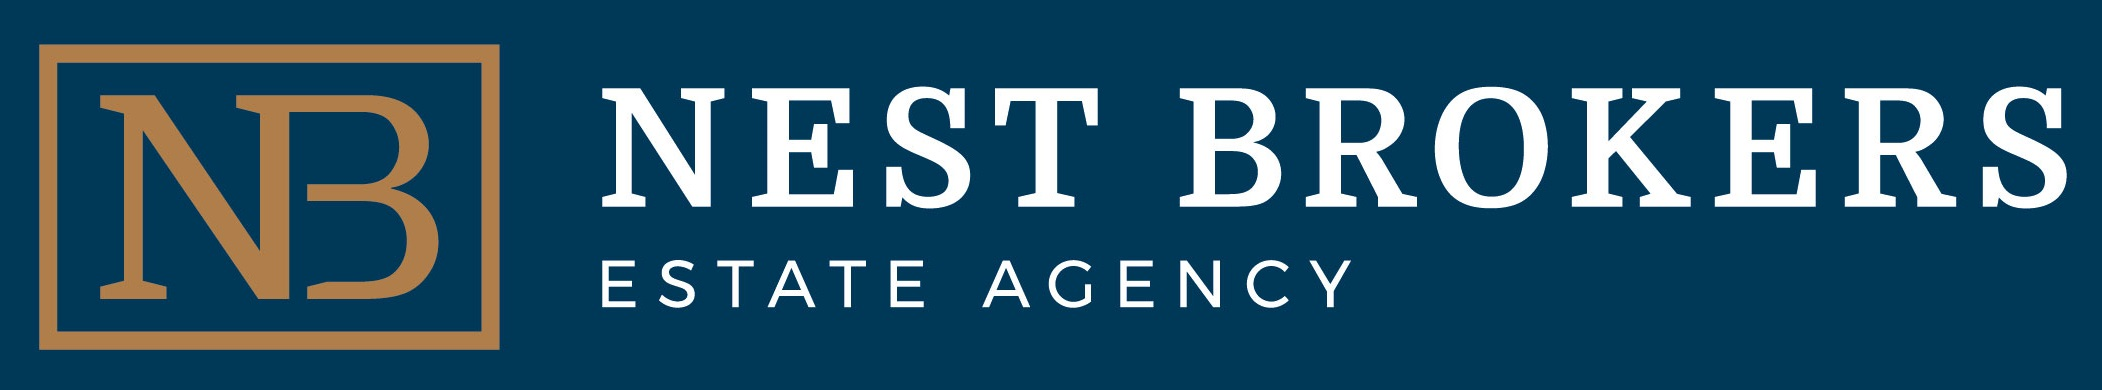 Nest Brokers Estate Agency